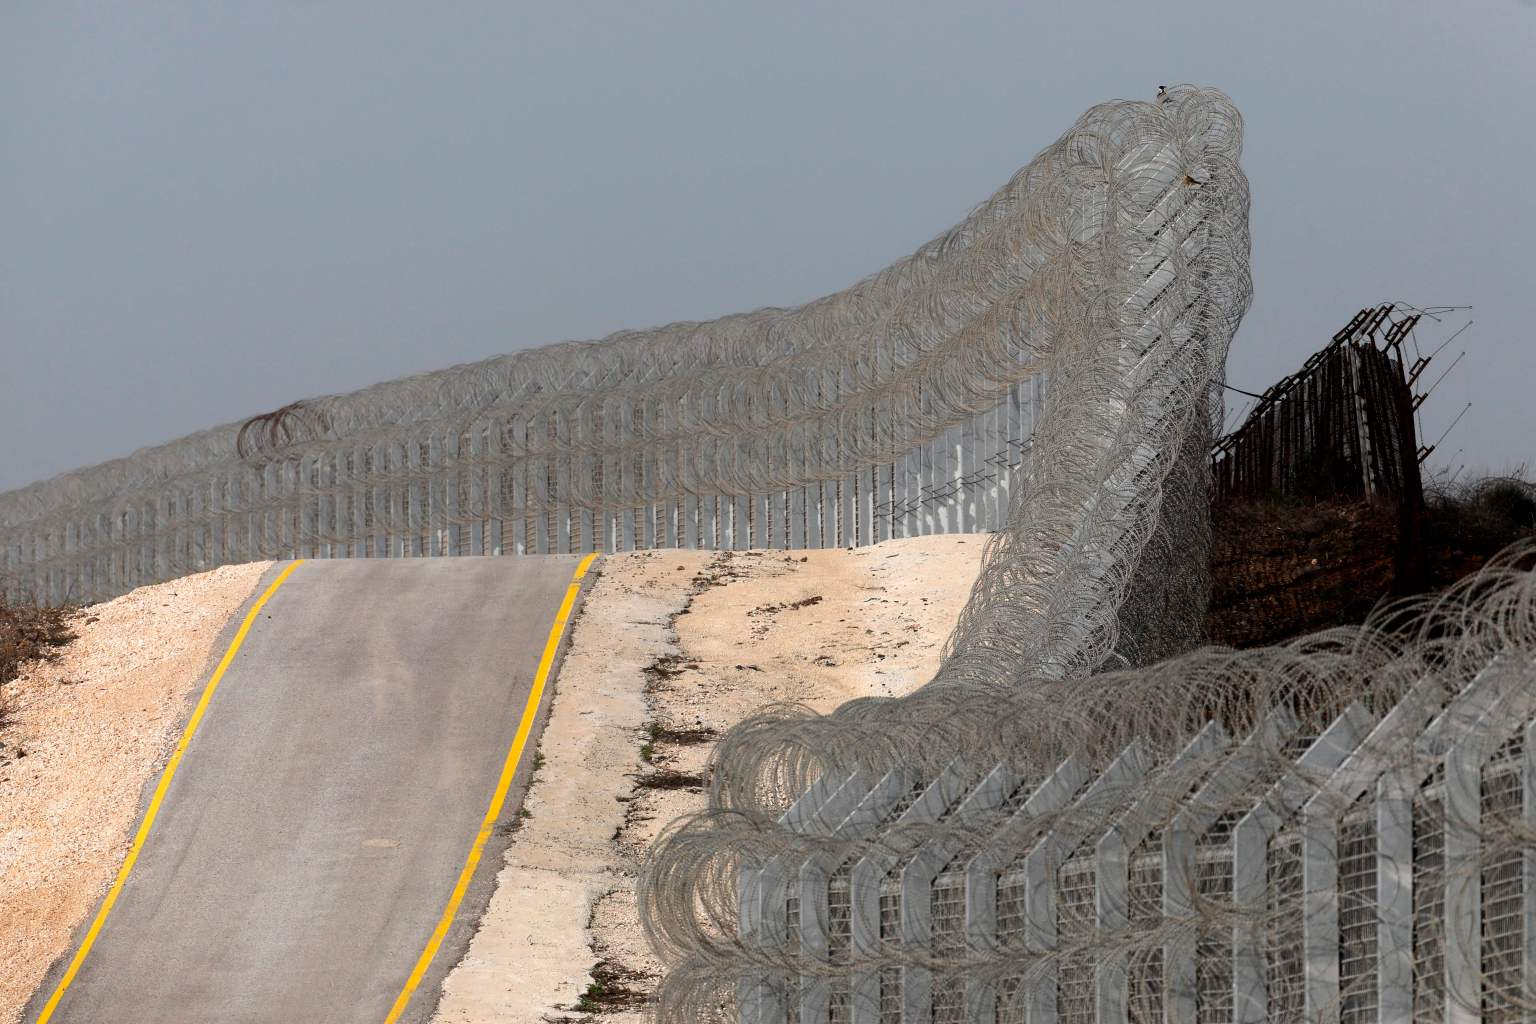 TOPSHOT - A picture taken on March 8, 2018 shows the border fence separating the Israeli-annexed Golan Heights and Syria, east of the Israeli settlement of Ramat Magshimim. / AFP PHOTO / MENAHEM KAHANA        (Photo credit should read MENAHEM KAHANA/AFP/Getty Images)